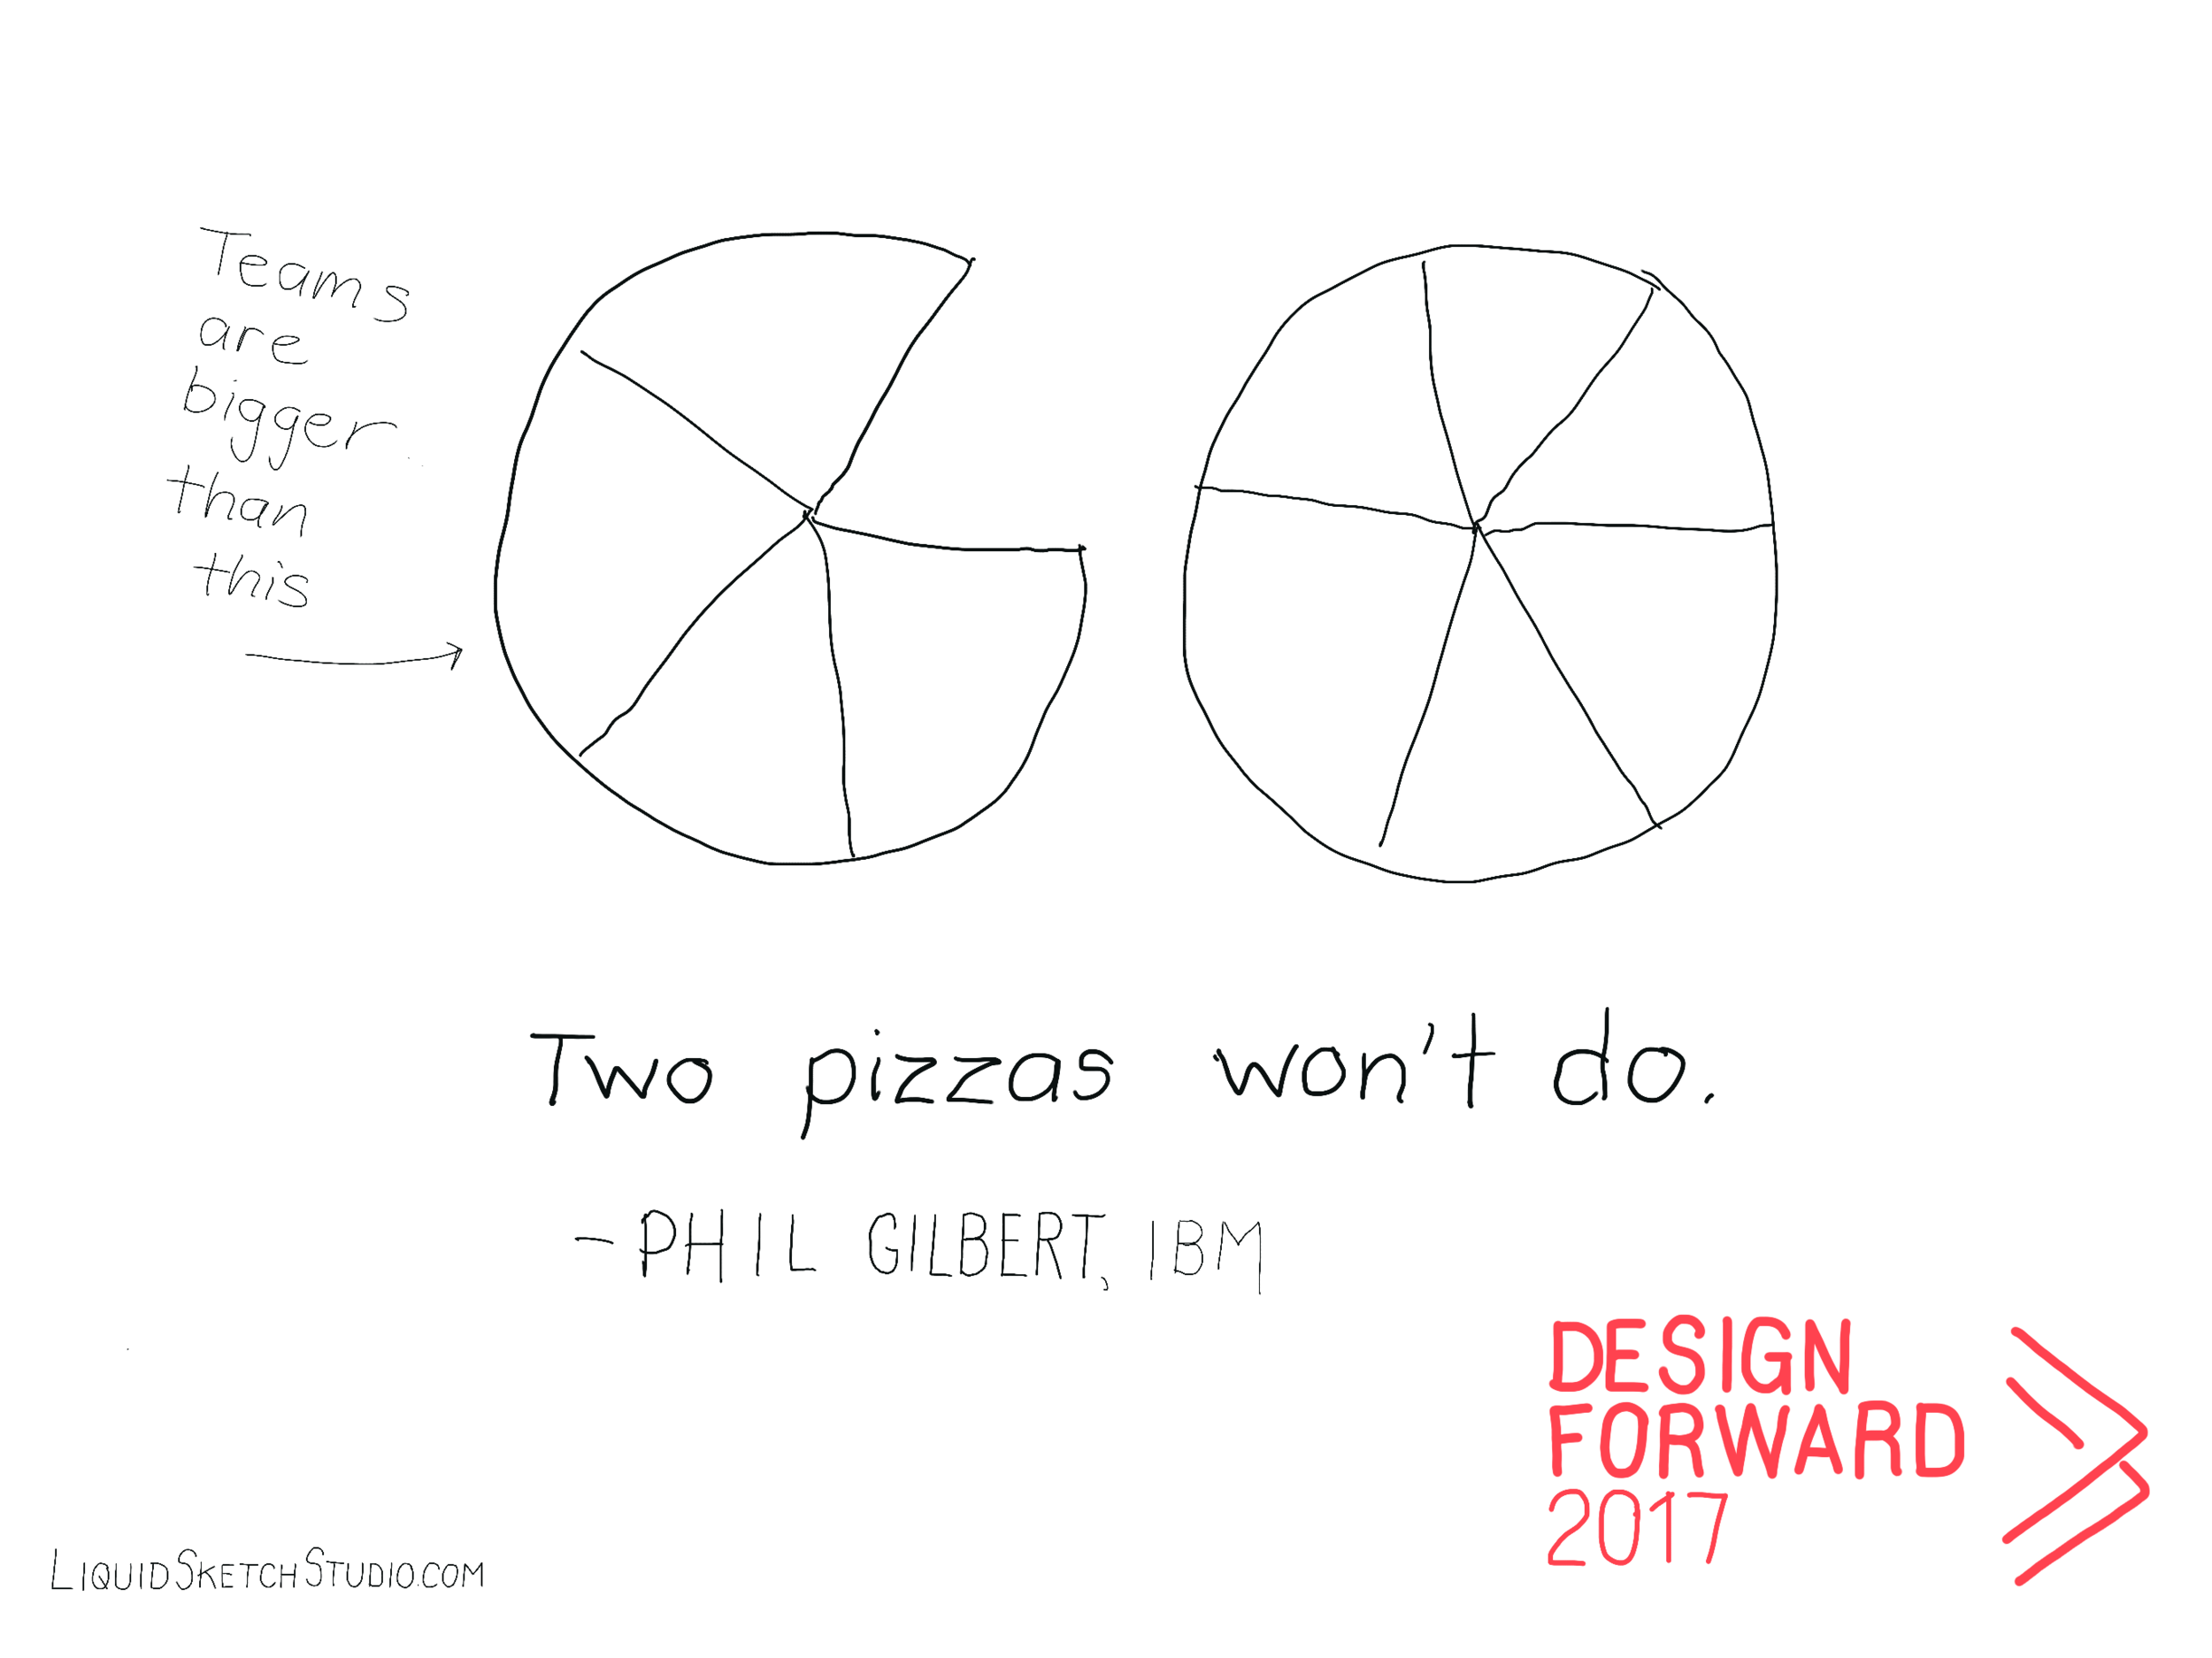 DFSD_pizzas.png